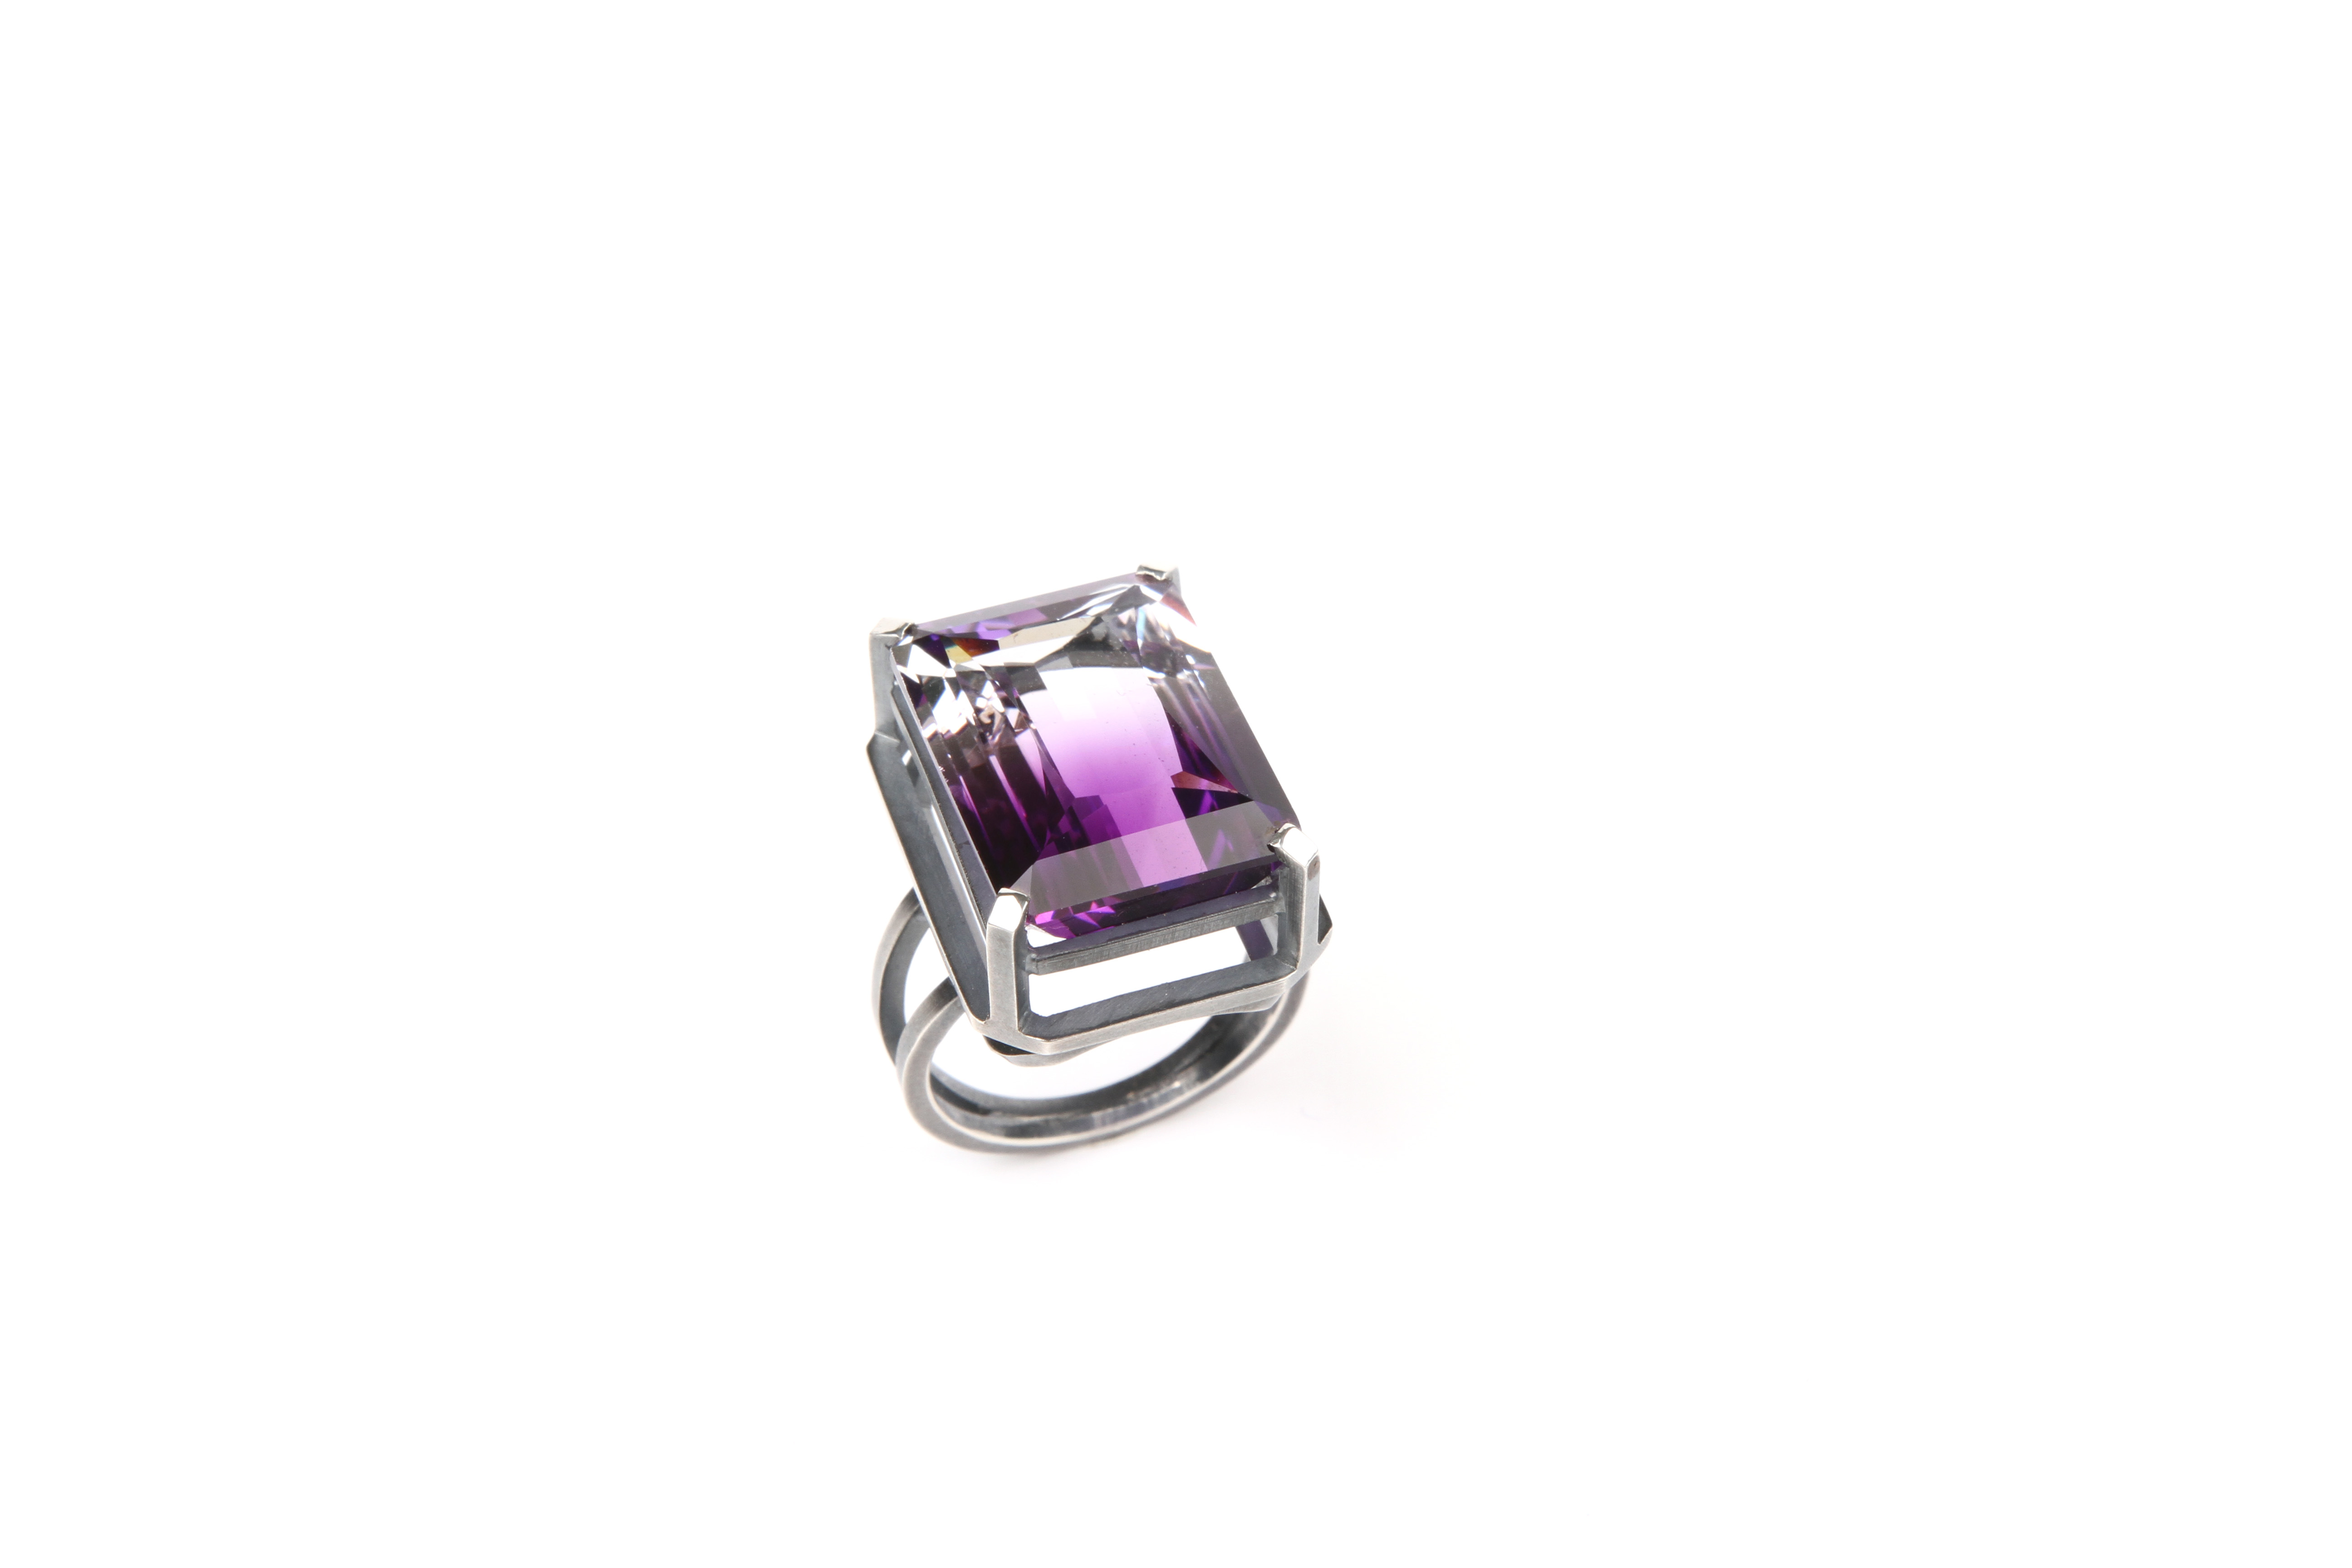 Silver ring (blackened) with a purple stone